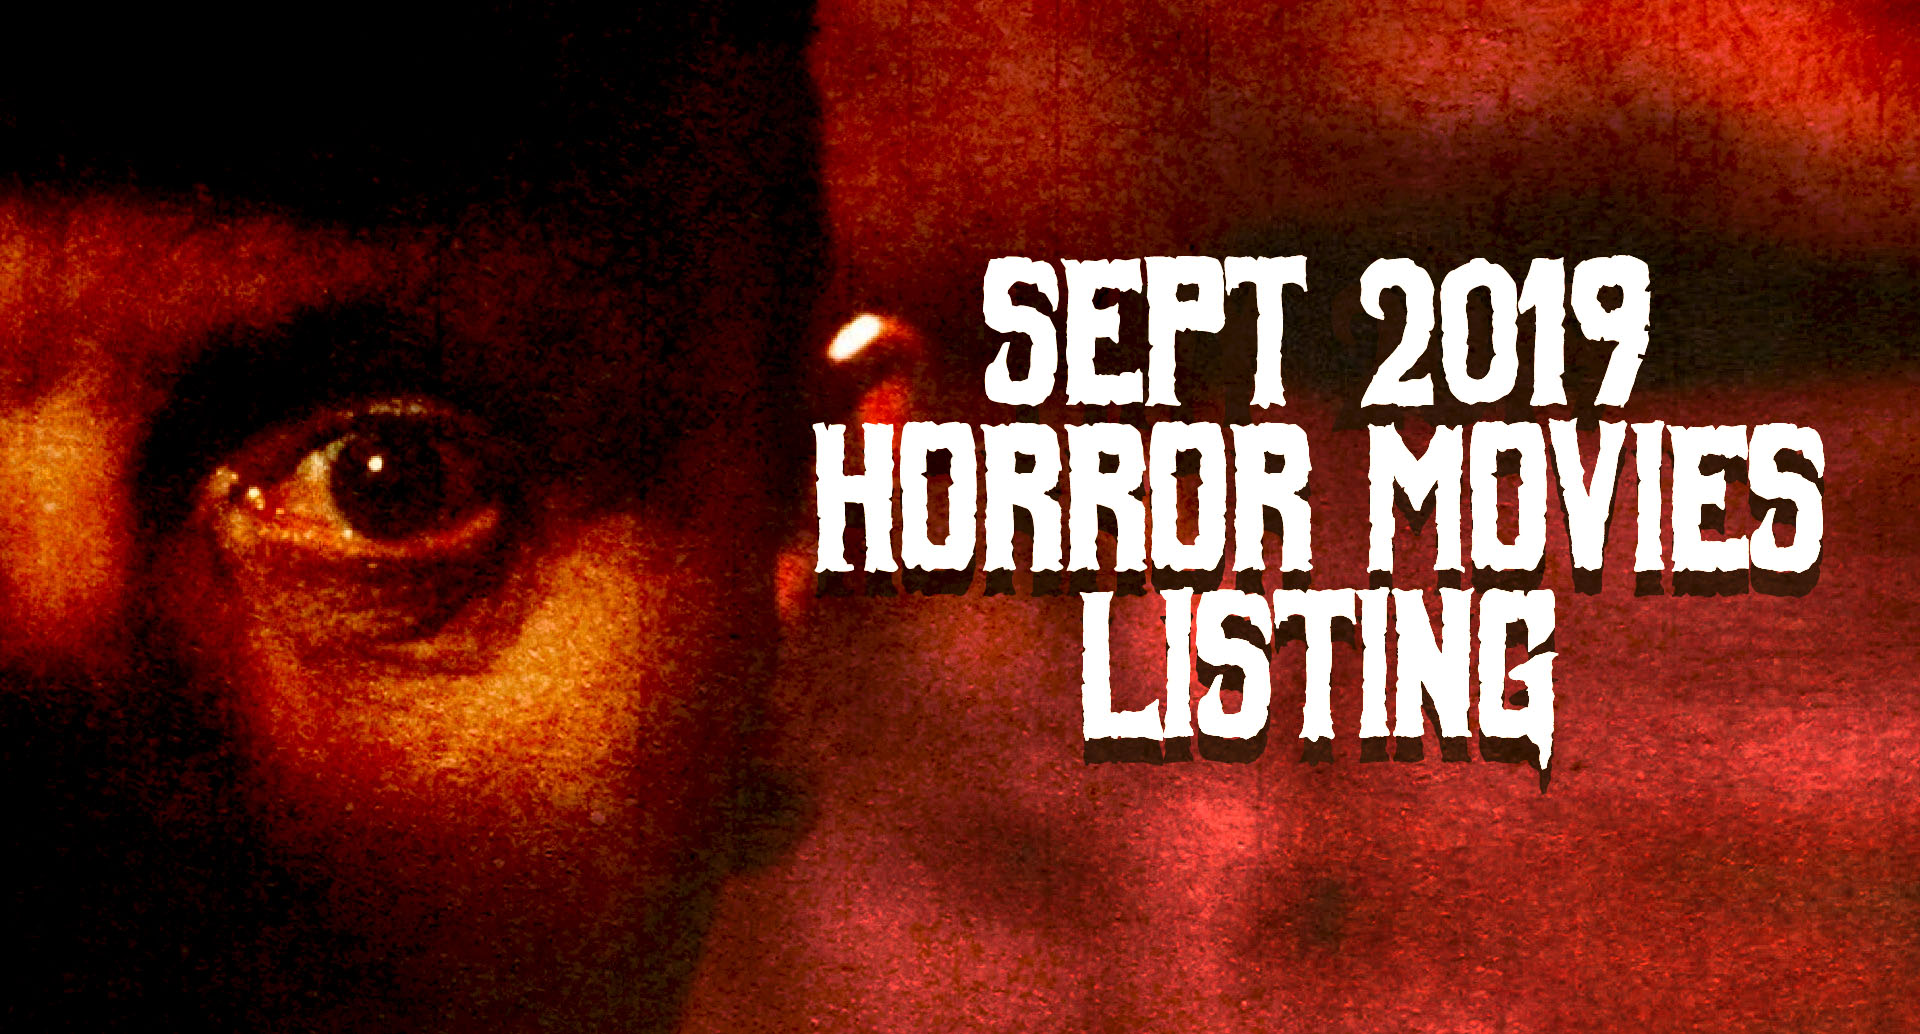 Horror Movies Showing in September 2019